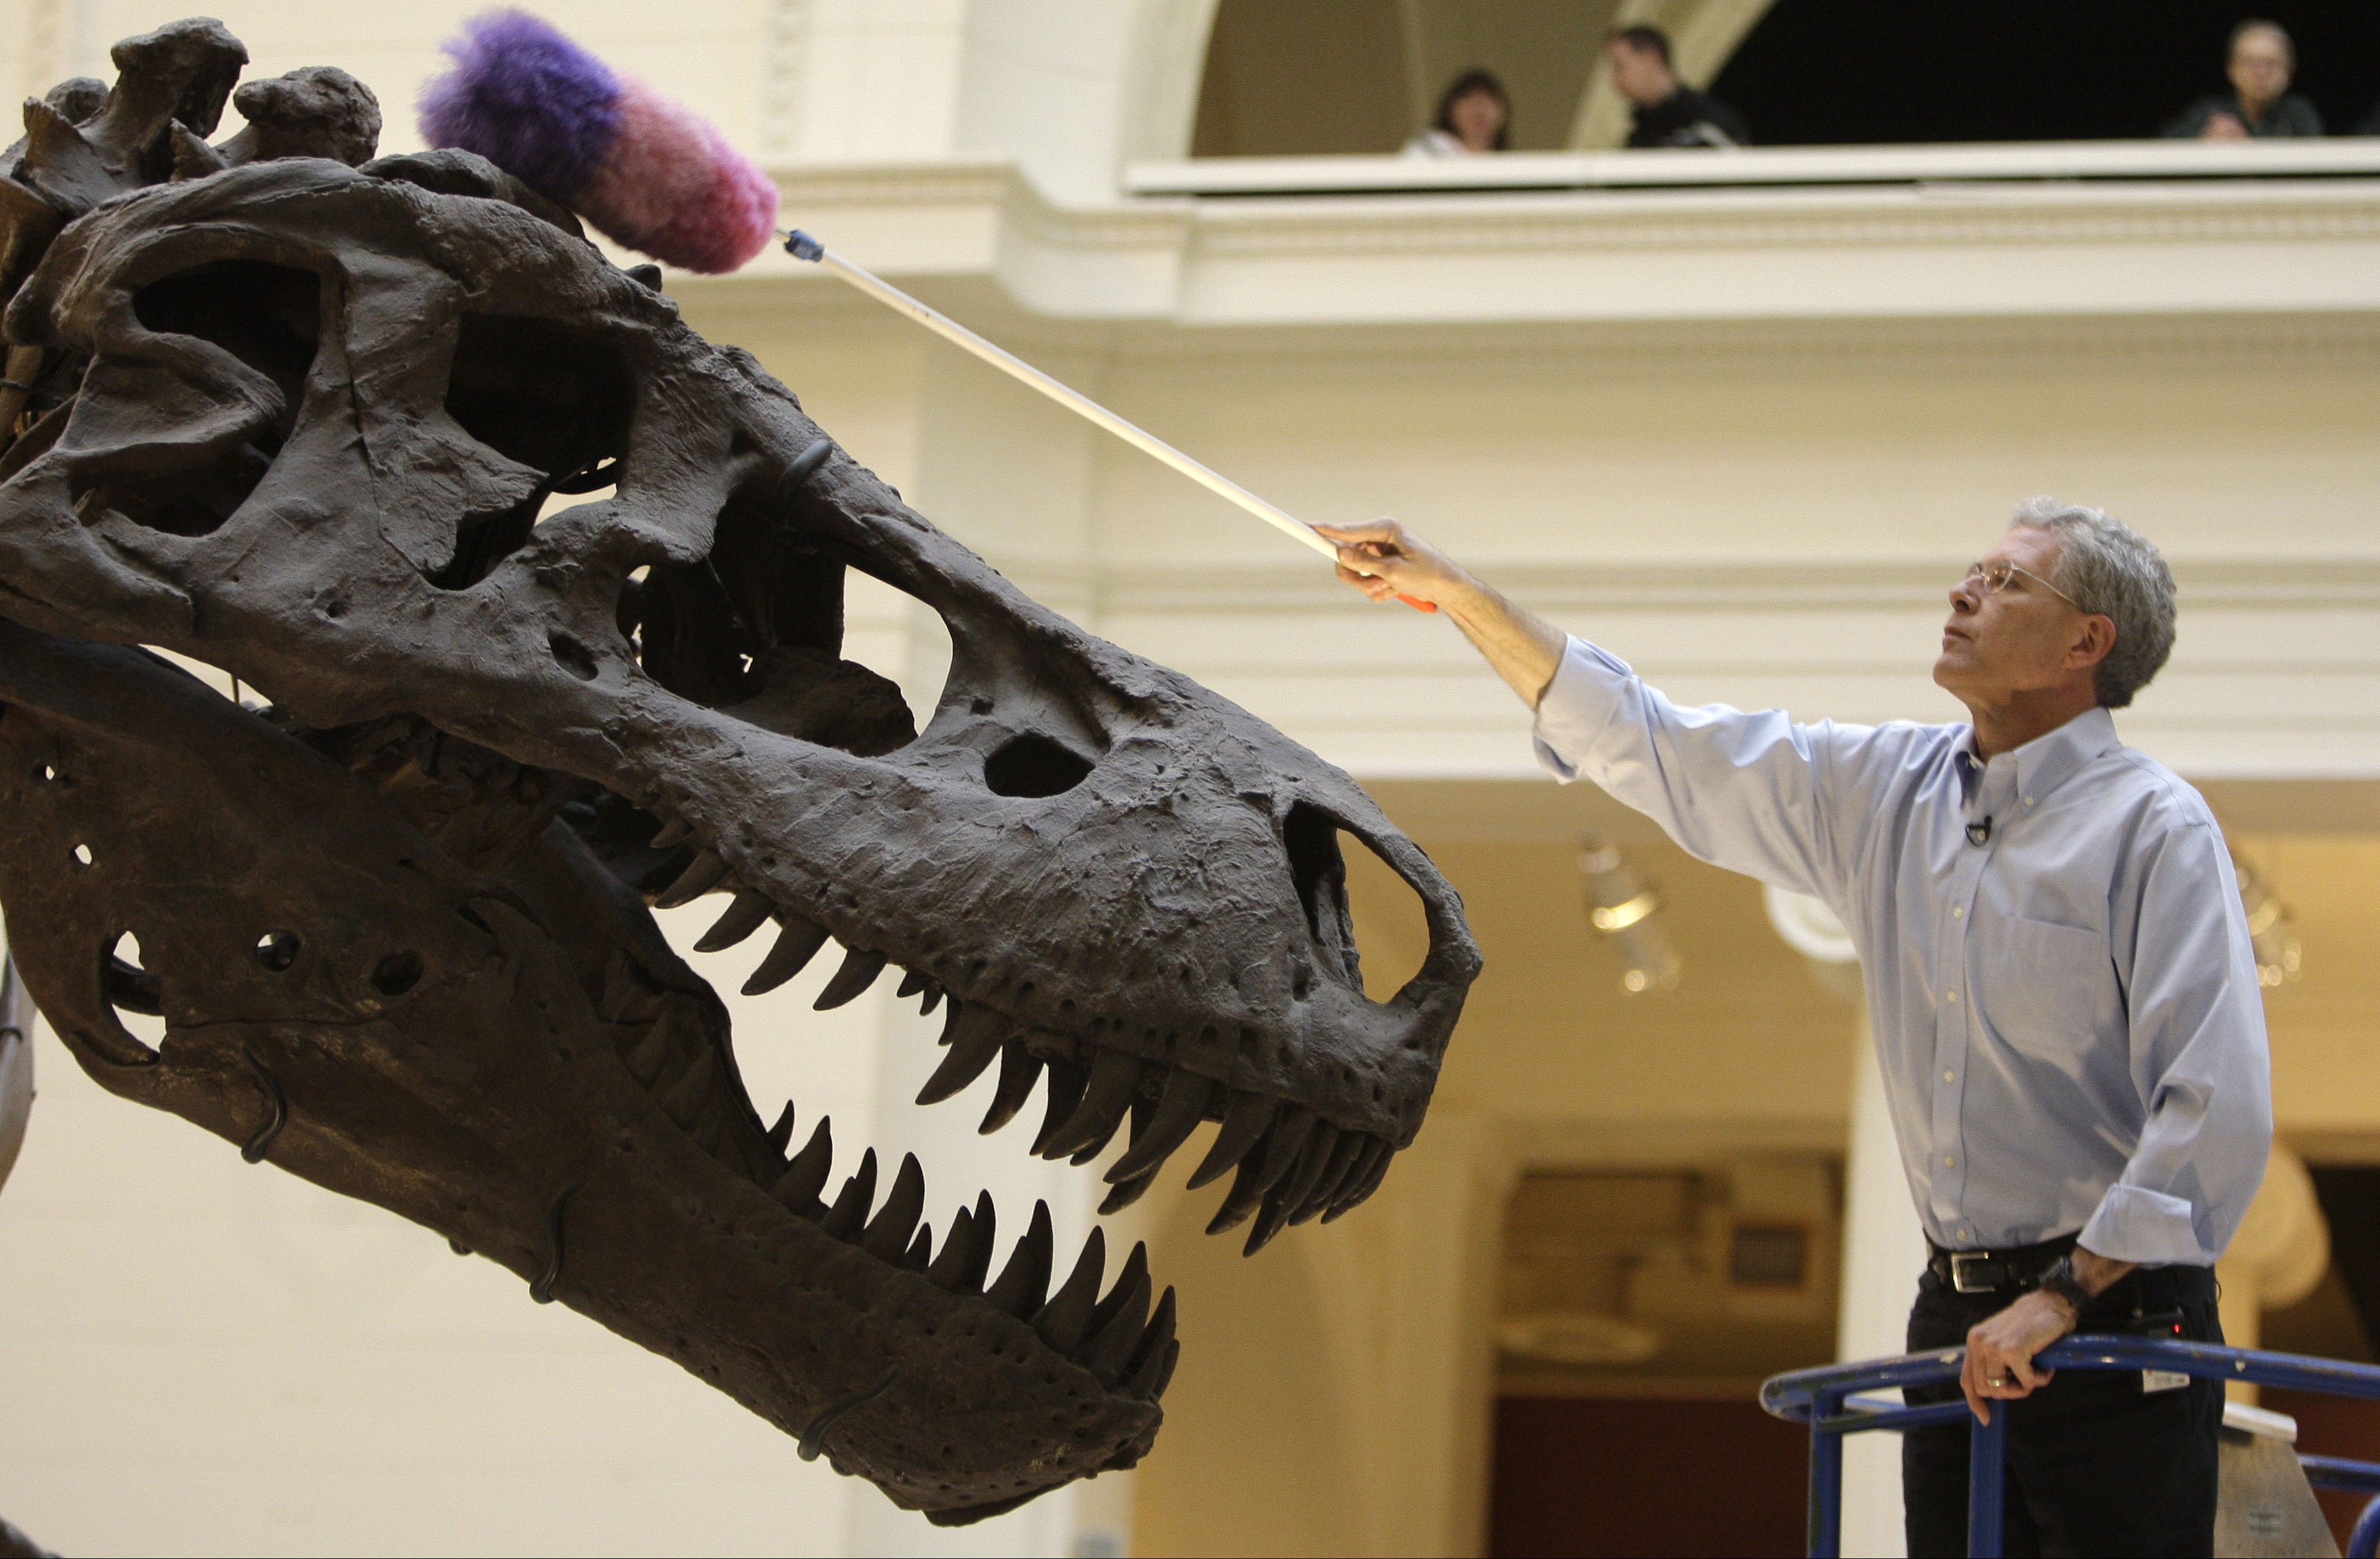 Bill Simpson, collections manager of fossil vertebrates at Chicago's Field Museum, dusts the Tyrannosaurus rex skeleton known as Sue on display at museum Wednesday, May 12, 2010 in Chicago. The skeleton was being cleaned in anticipation of her 10th anniversary at the museum.